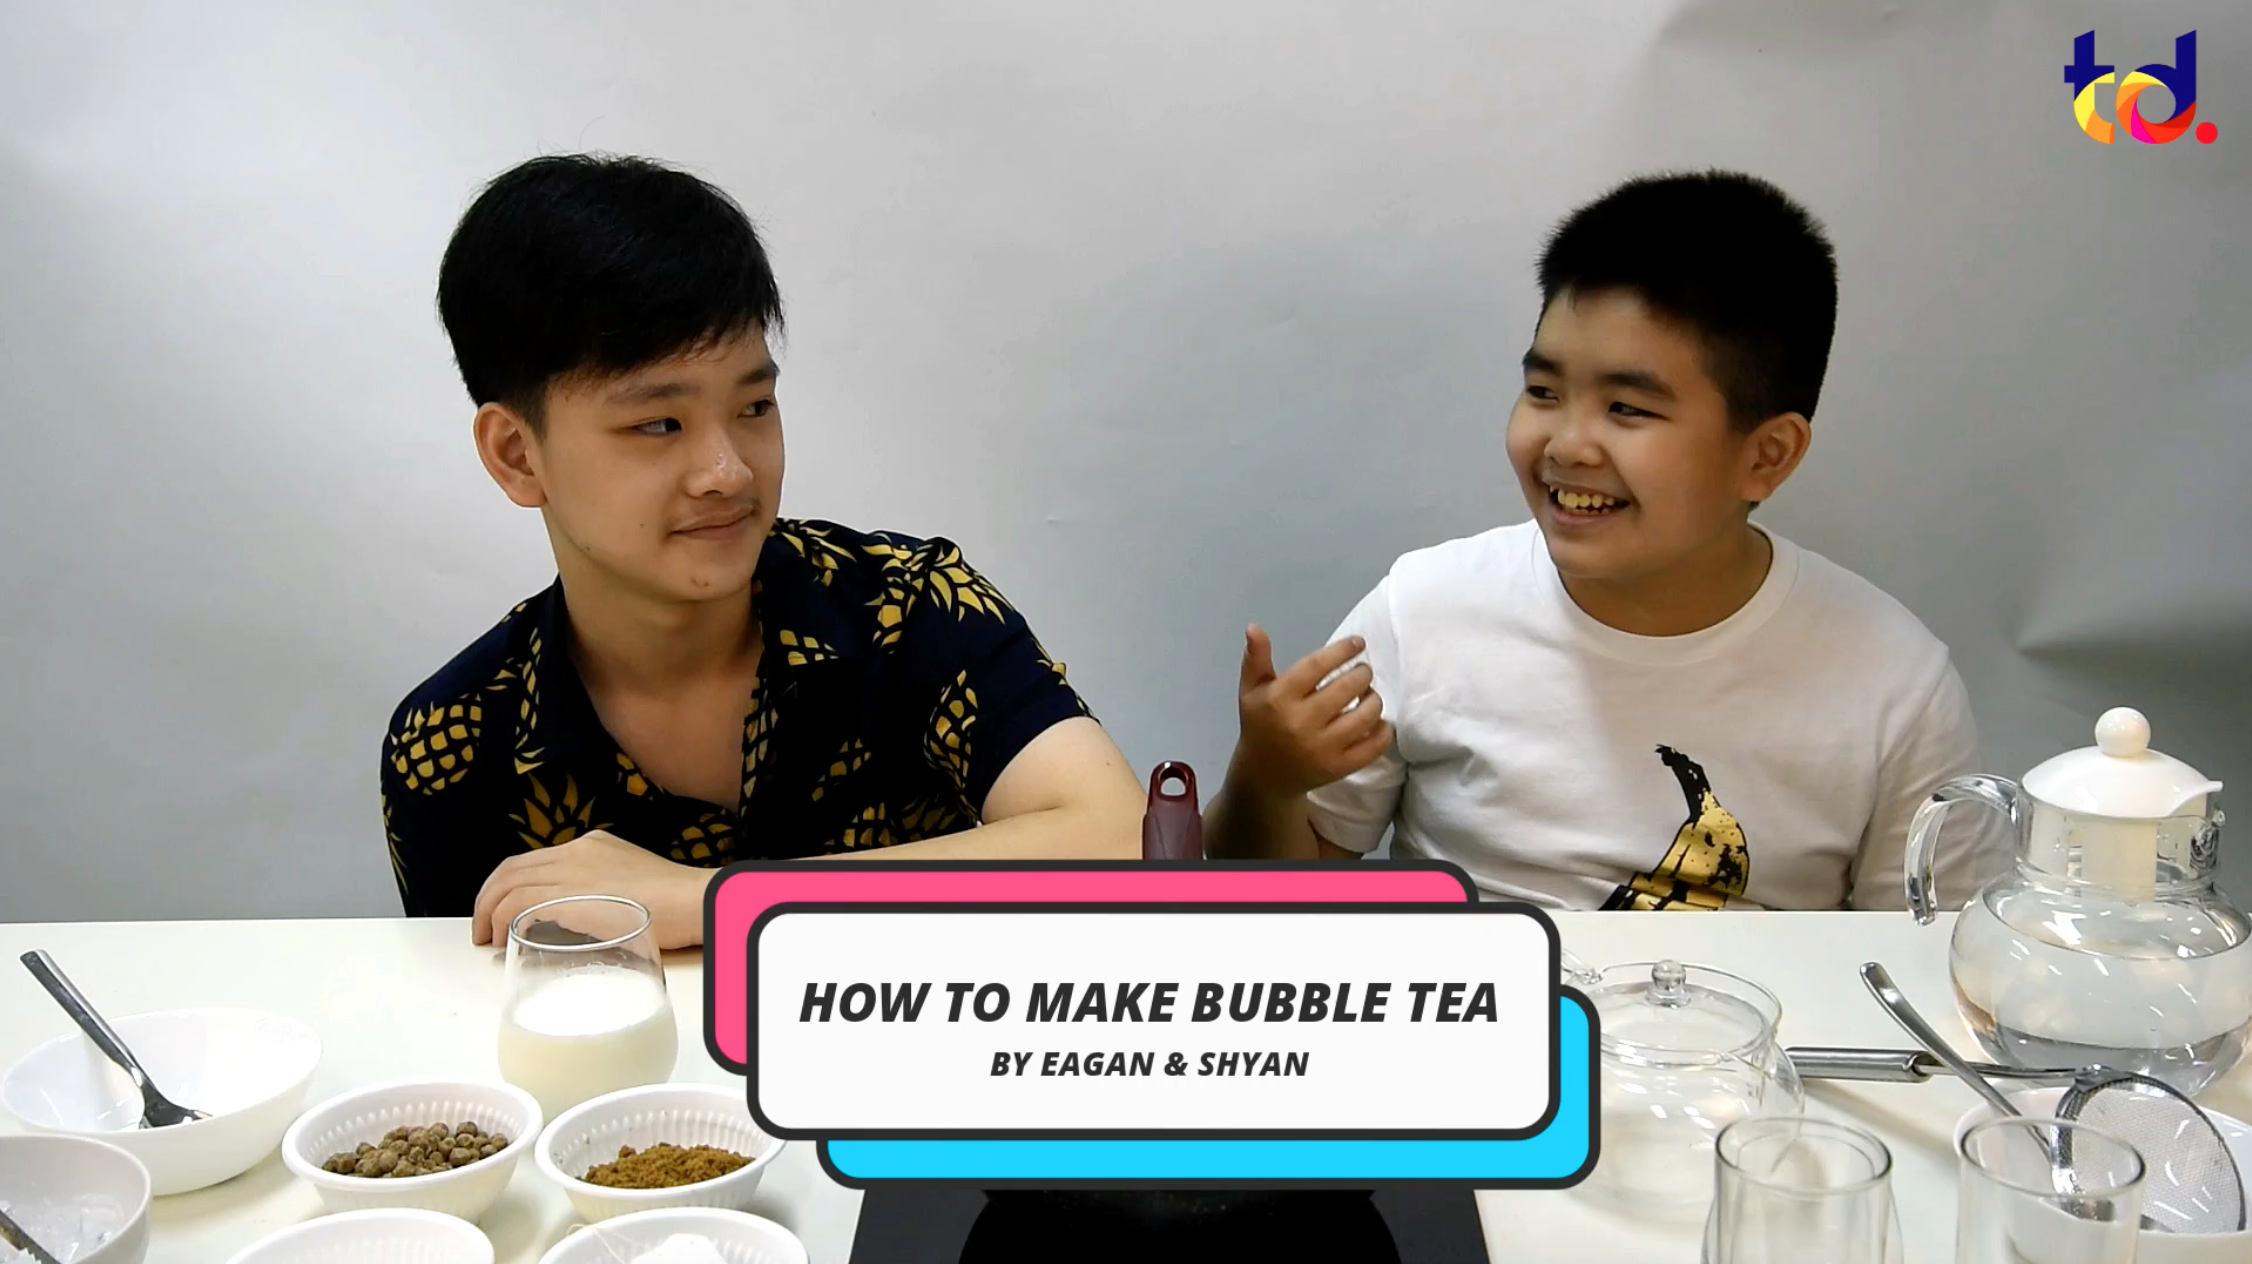 How to Make Bubble Tea?